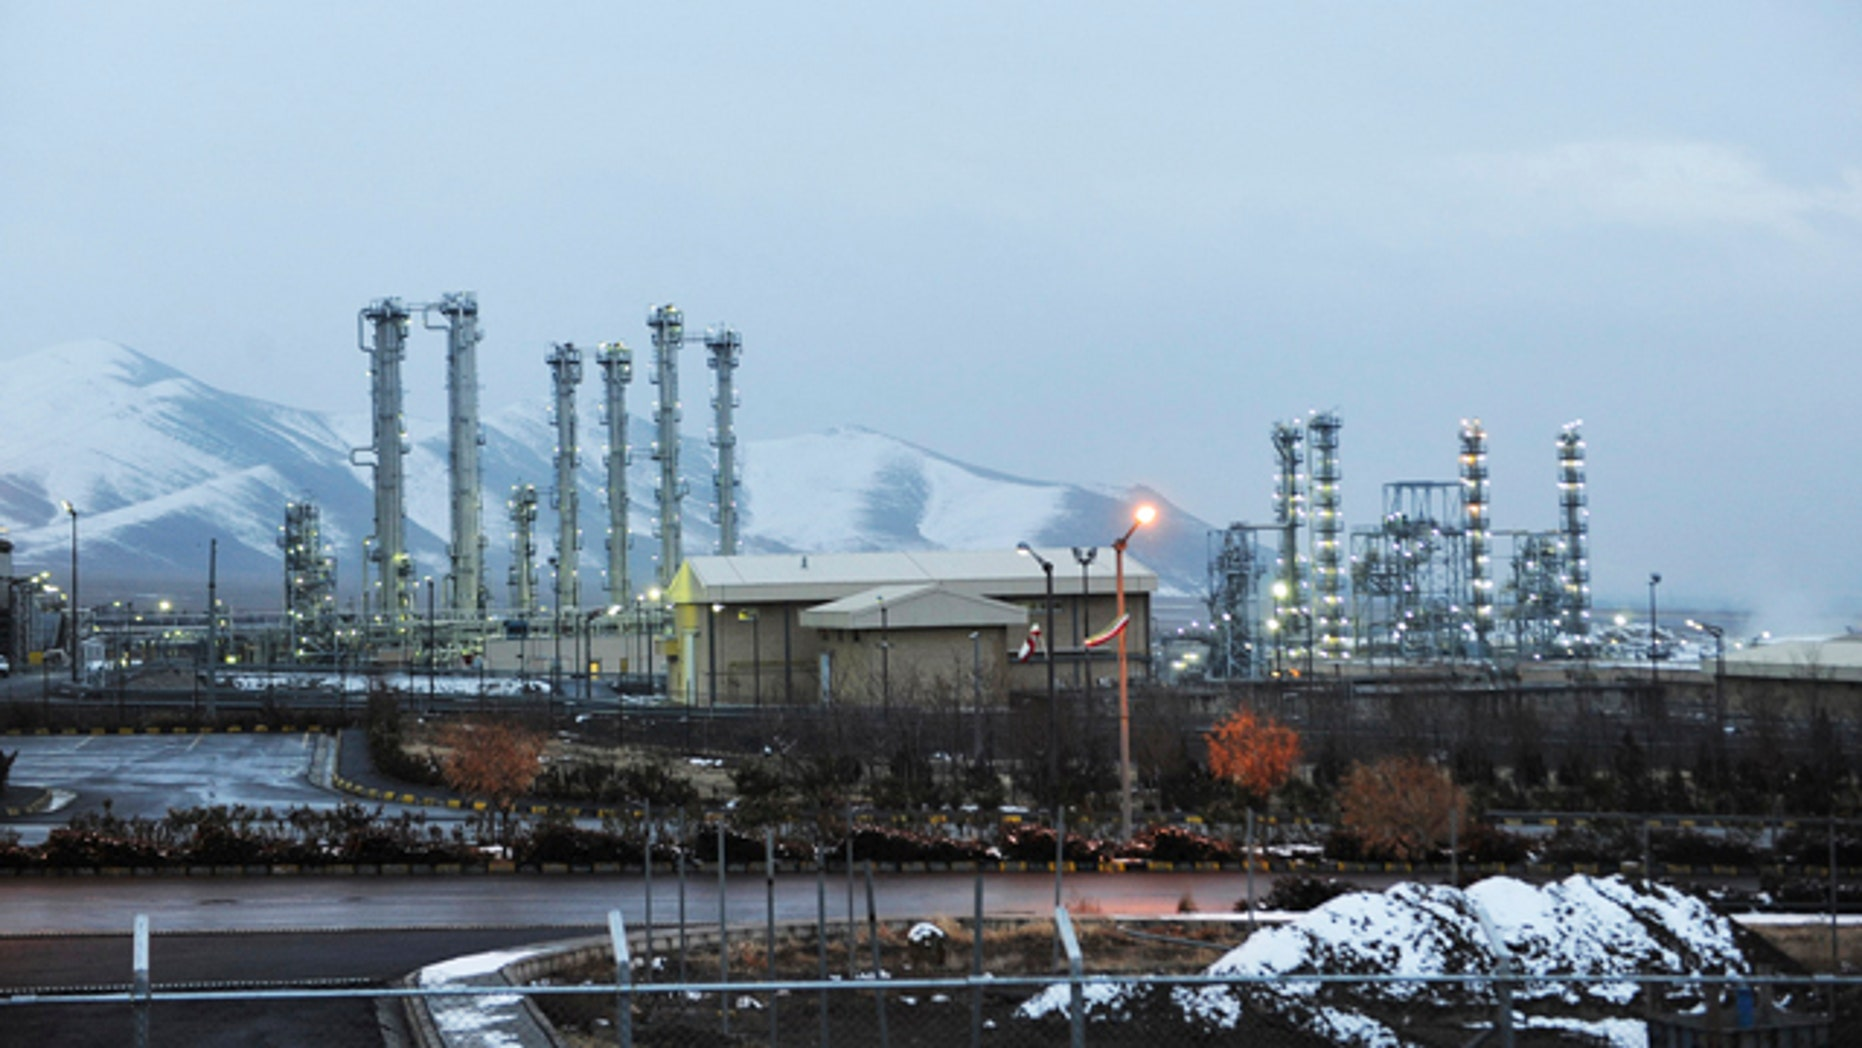 Jan. 15, 2011: A file photo, shows Iran's heavy water nuclear facilities near the central city of Arak 150 miles southwest of Tehran, the negotiating stance from Iranian officials never varies: The Islamic Republic will not give up its capabilities to make nuclear fuel.